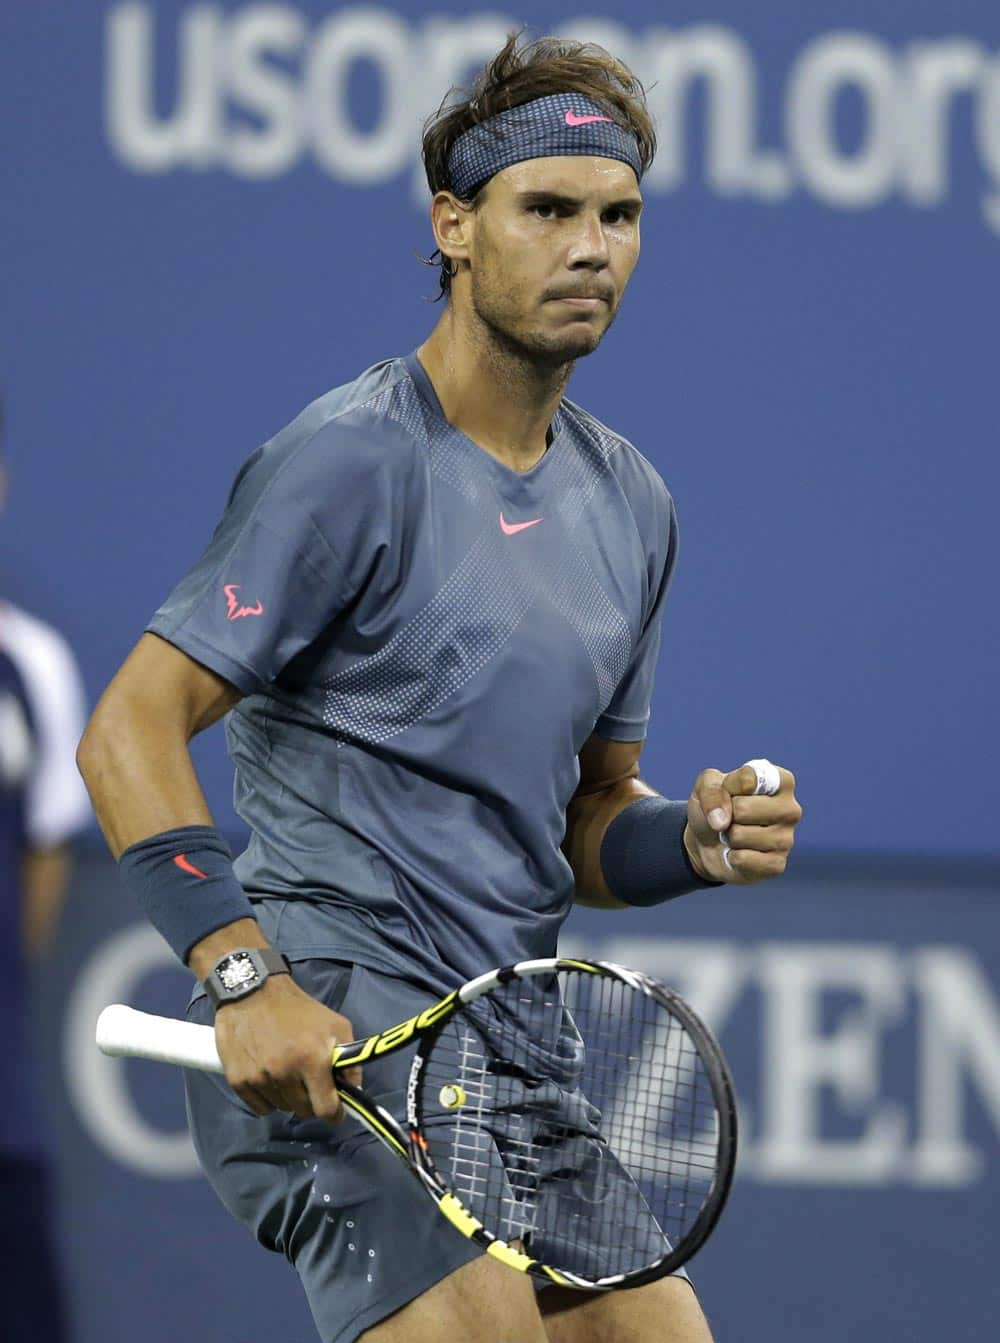 Rafael Nadal, of Spain, reacts after winning a point against Tommy Robredo, of Spain, during a quarterfinal of the US Open tennis tournament.